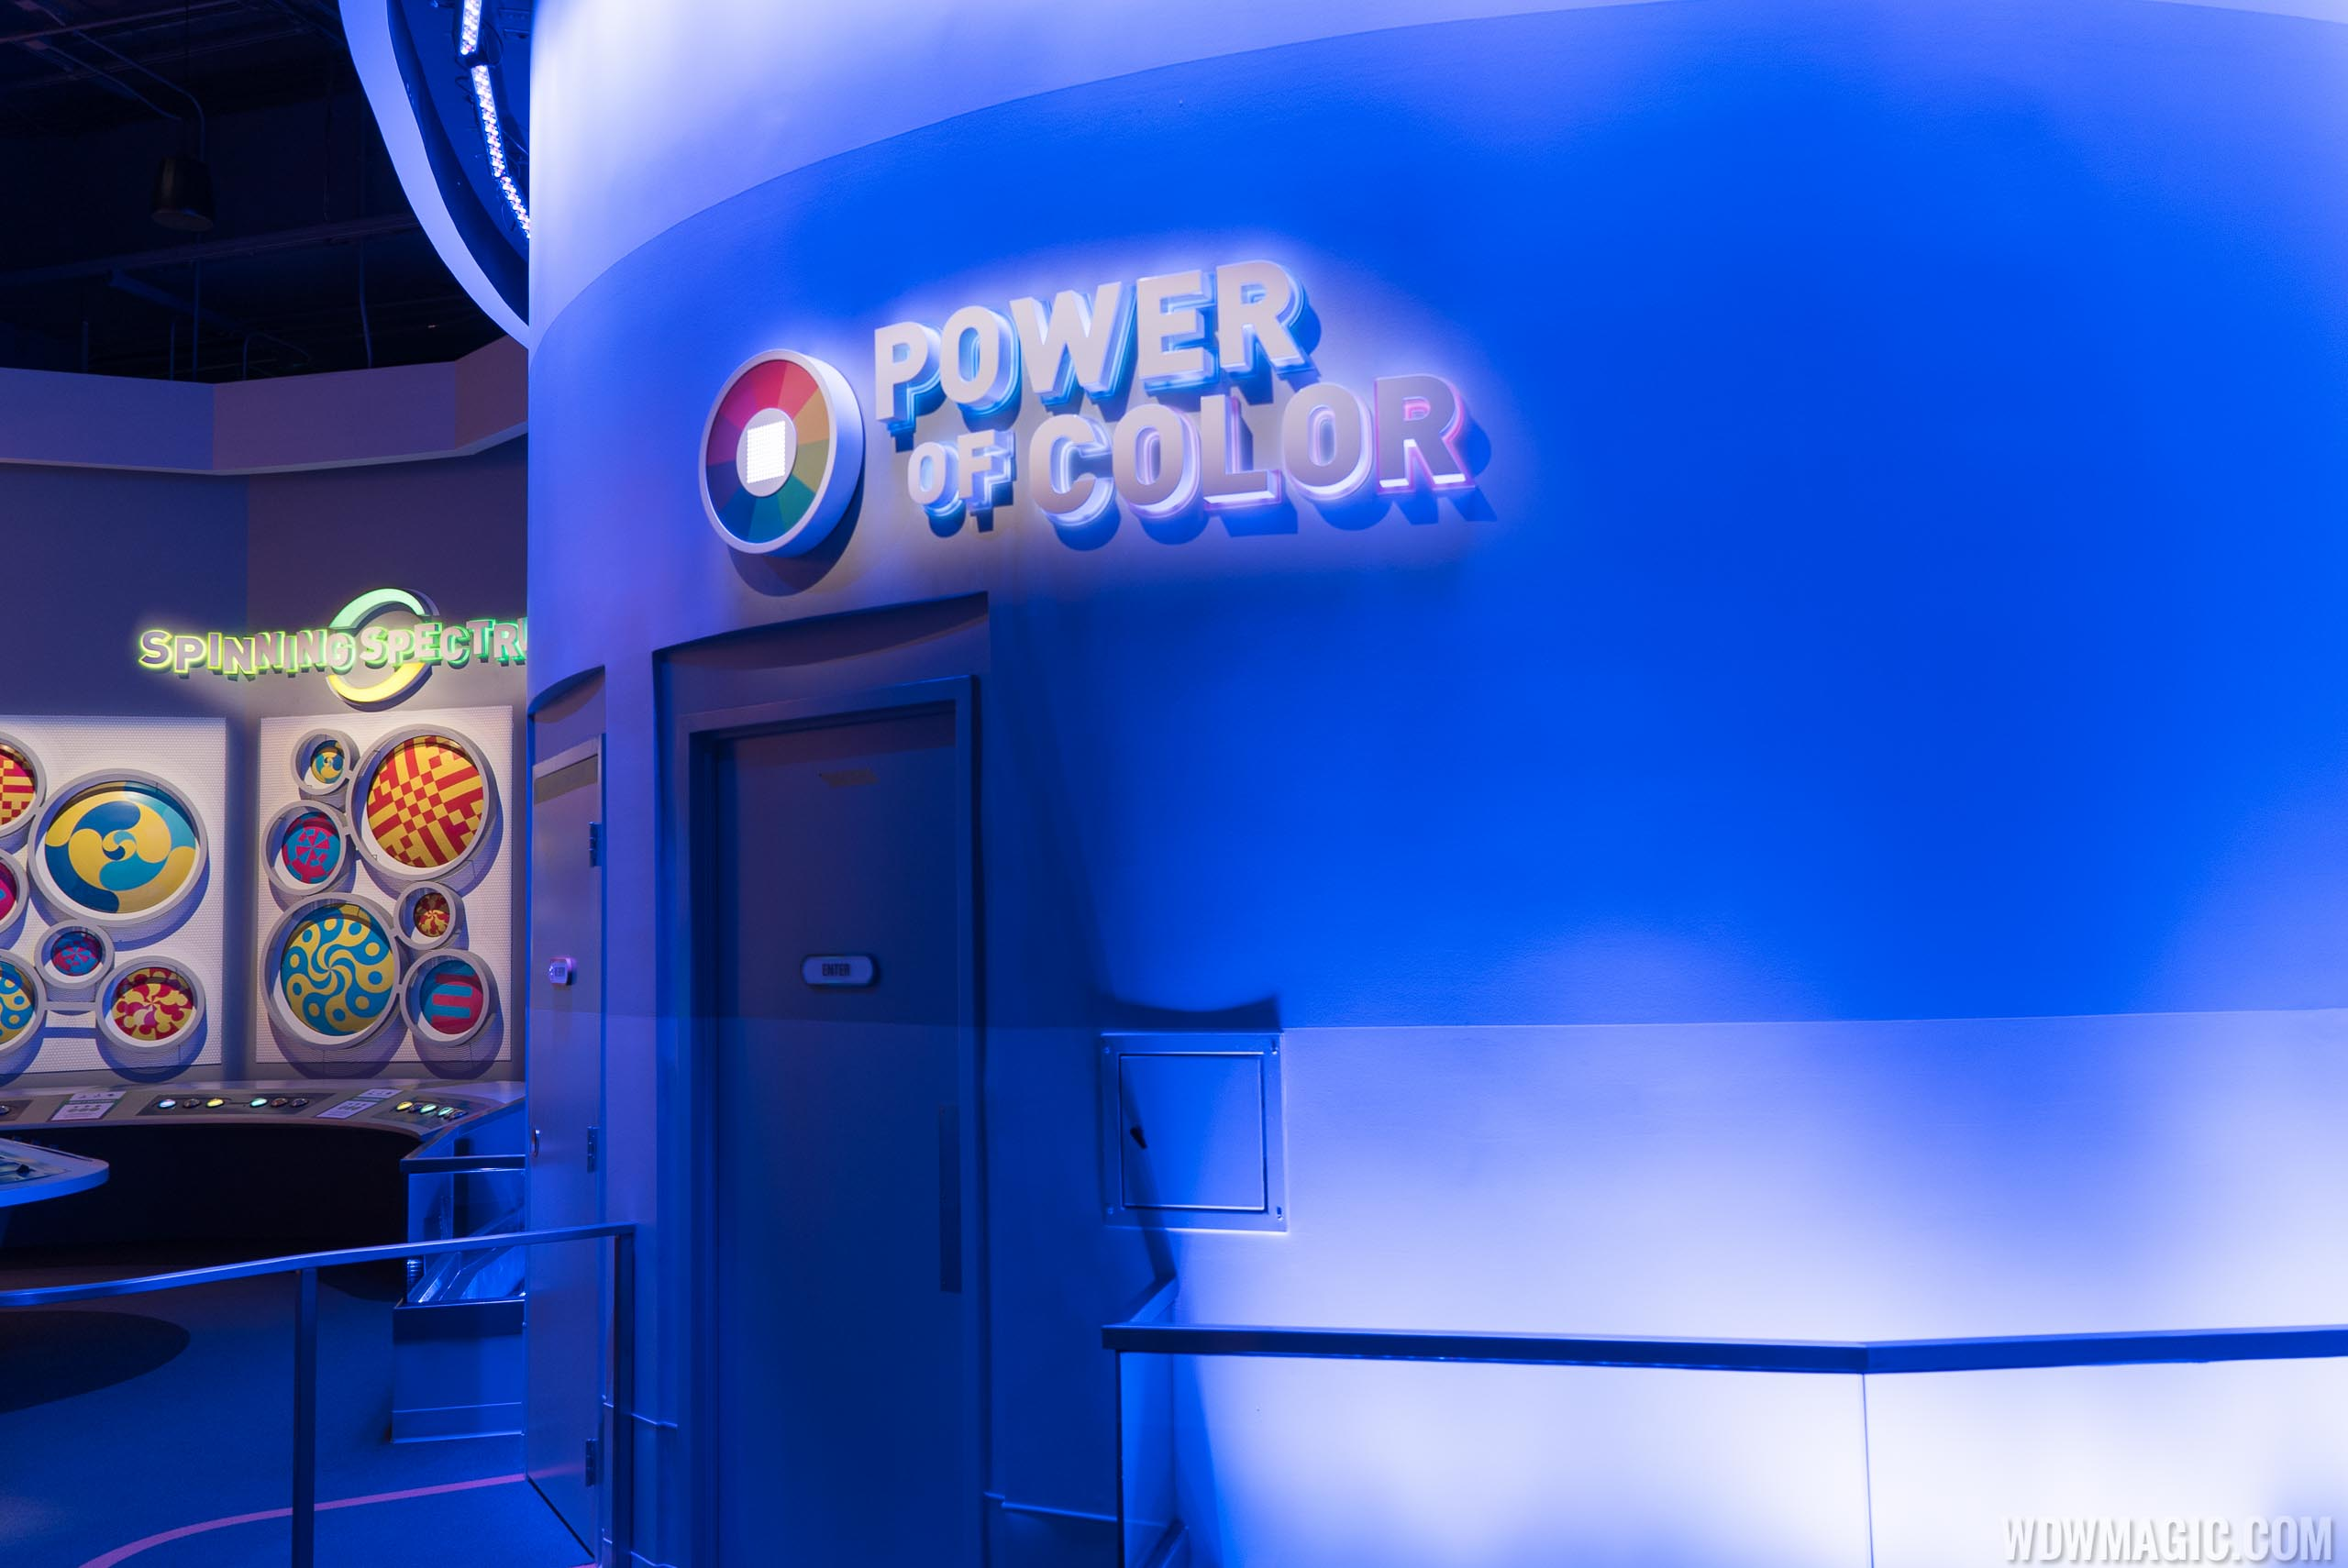 The Power of Color Theater